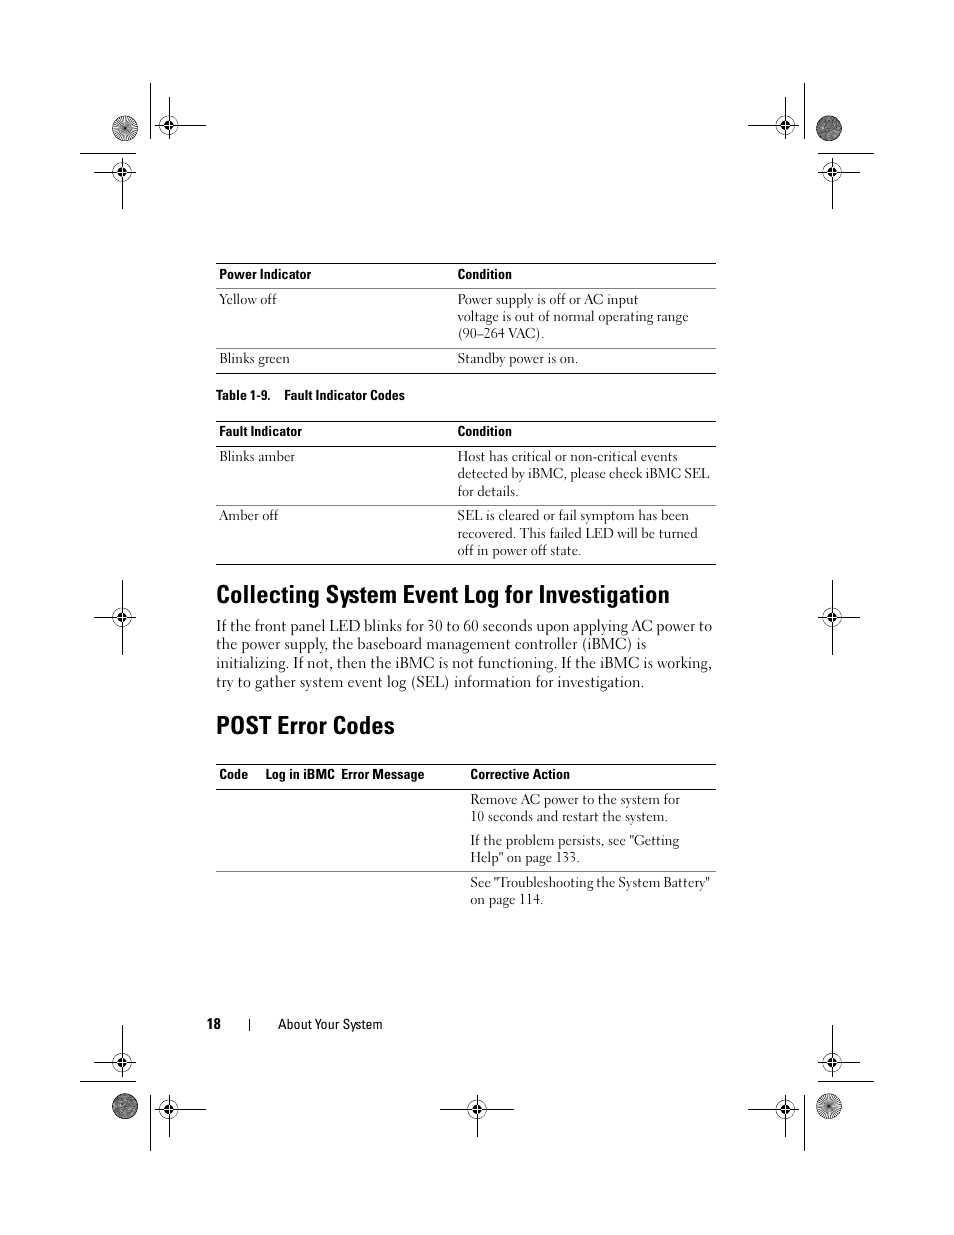 Collecting system event log for investigation, Post error codes